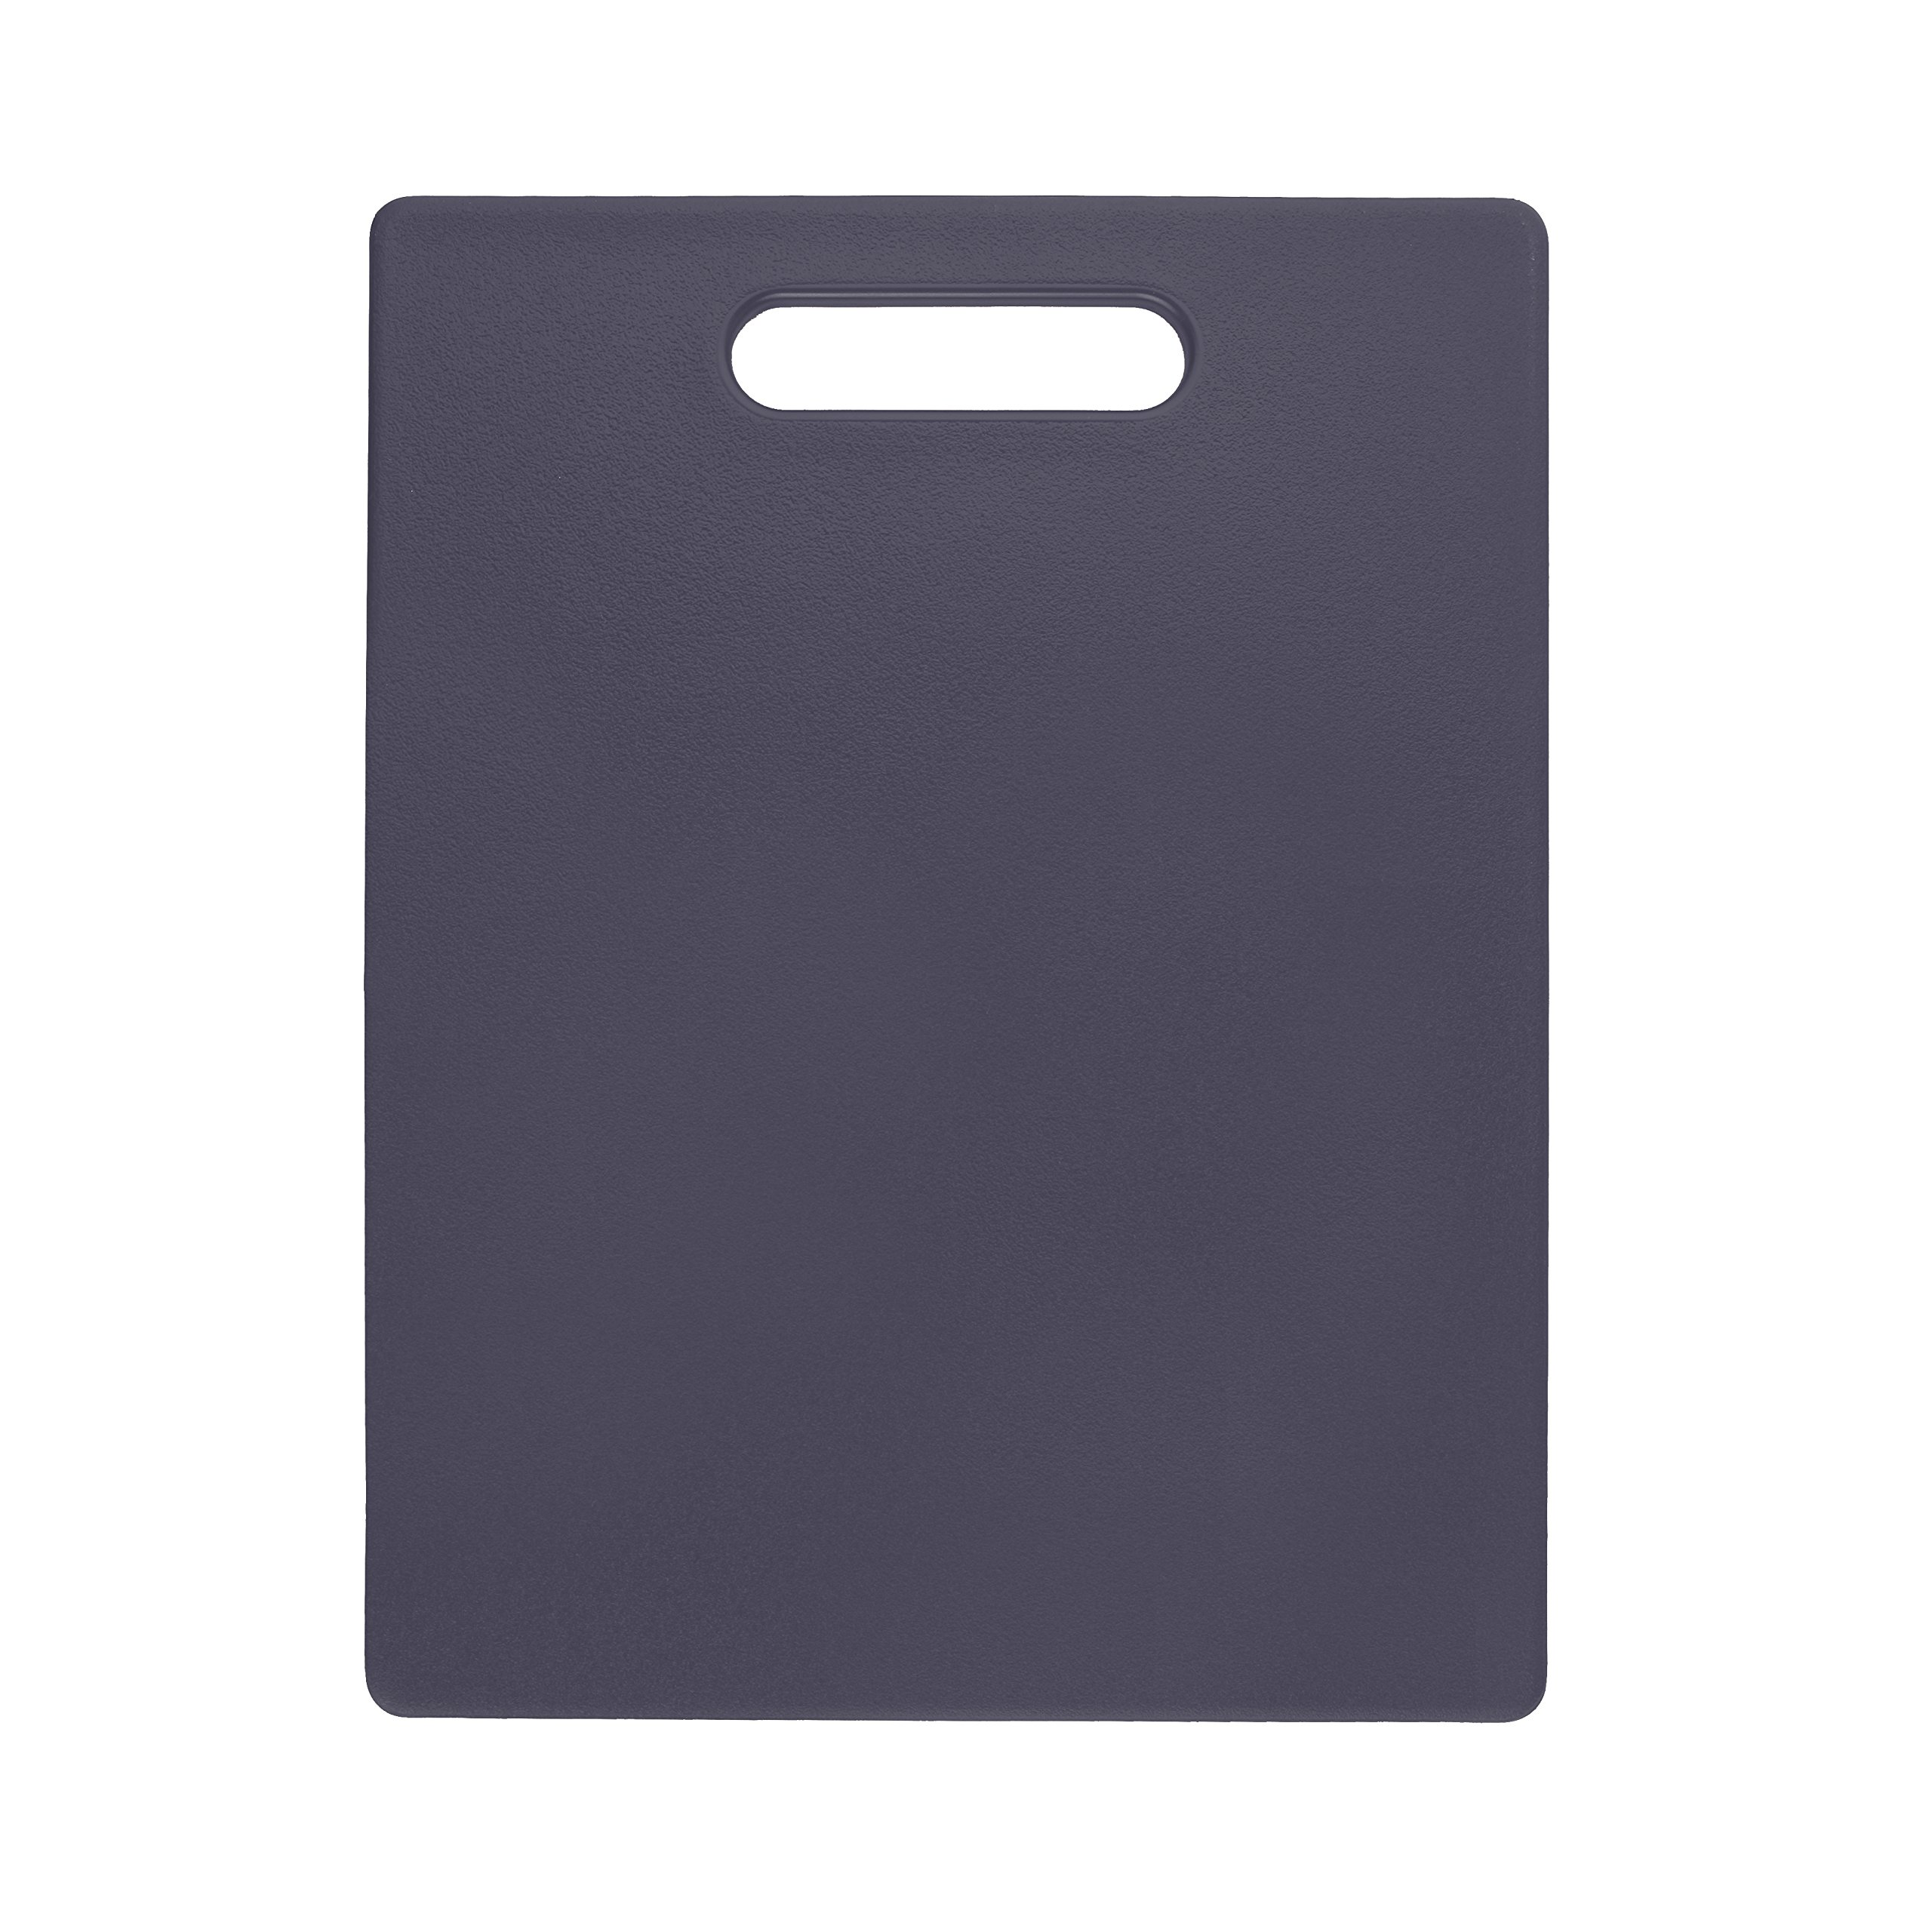 Dexas Classic Jelli Cutting Board with Handle, 11 by 14.5 inches, Gray